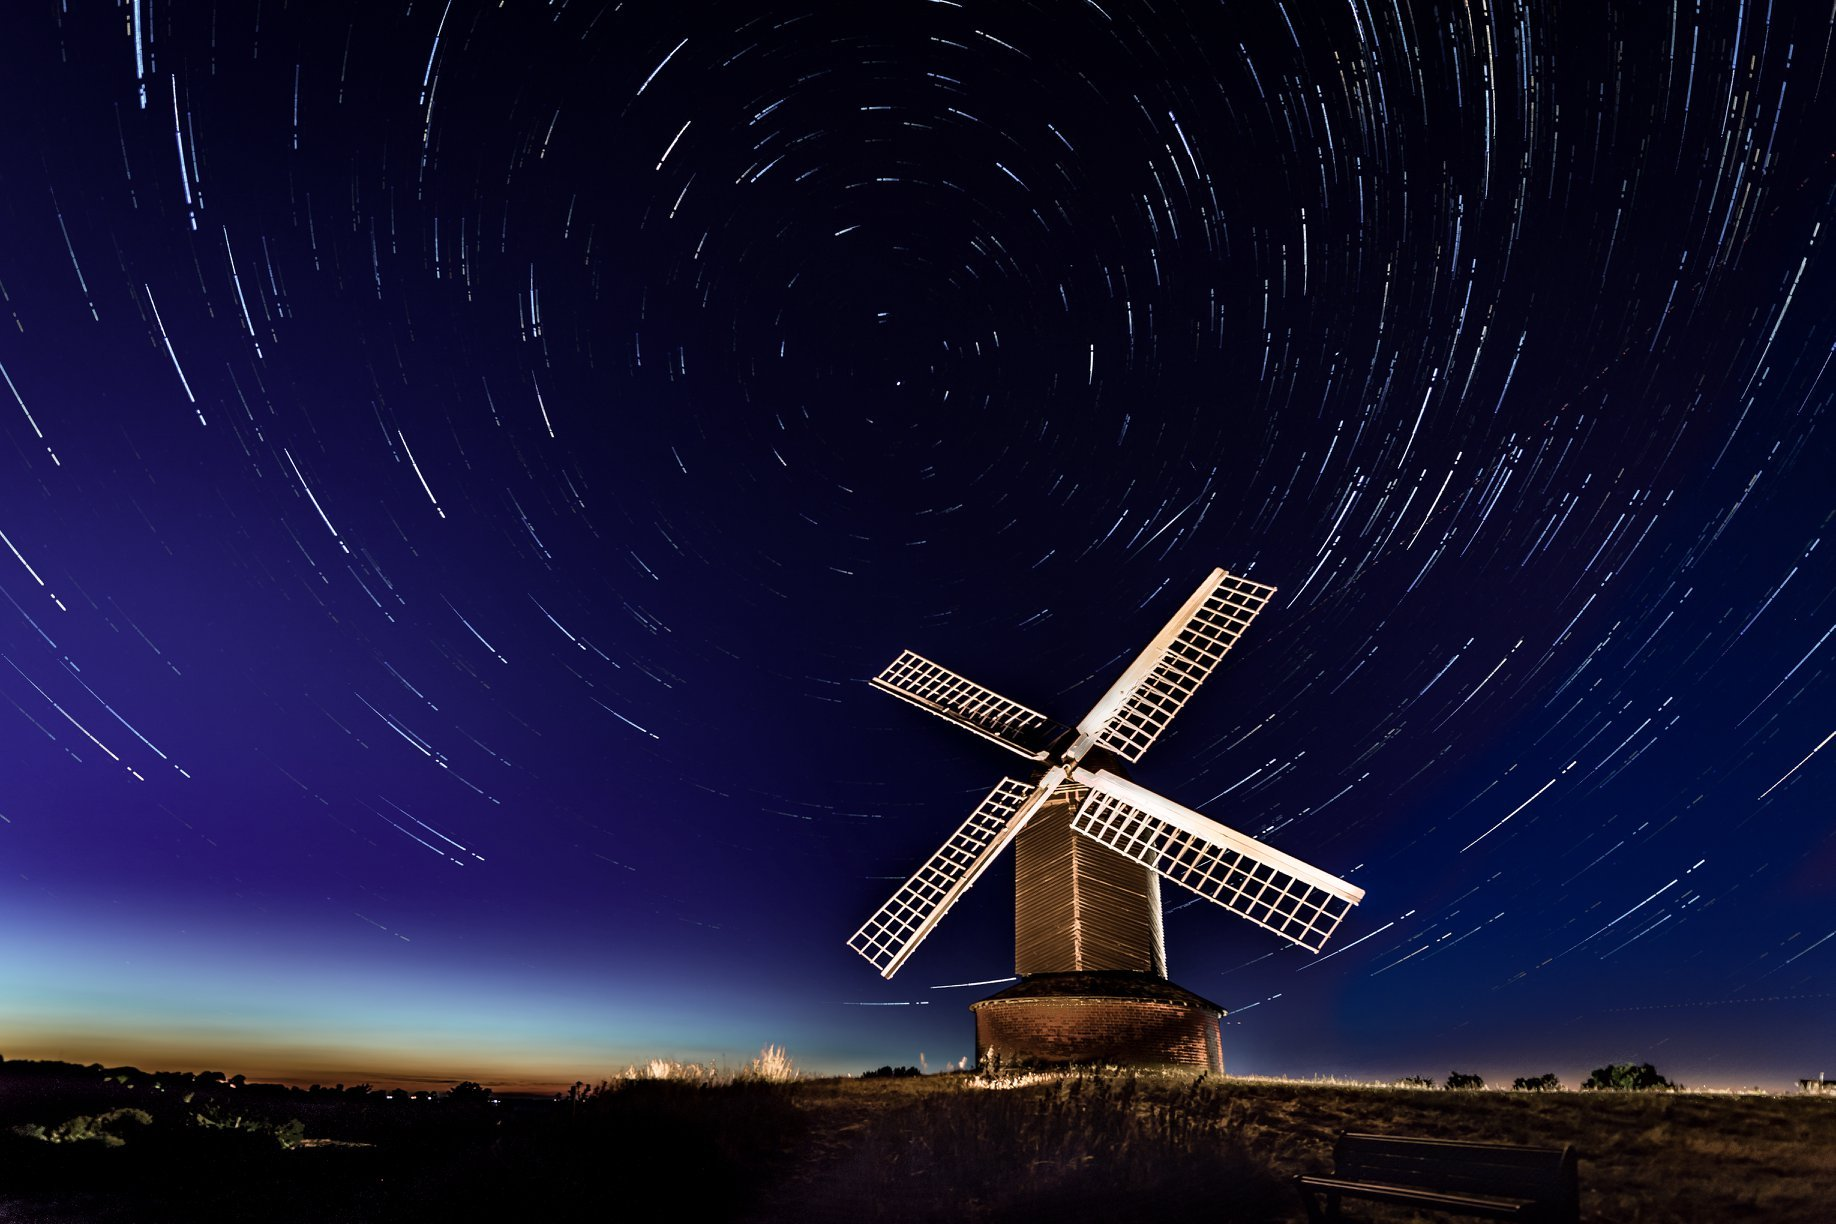 Star trails at Brill windmill by Anthony Morris